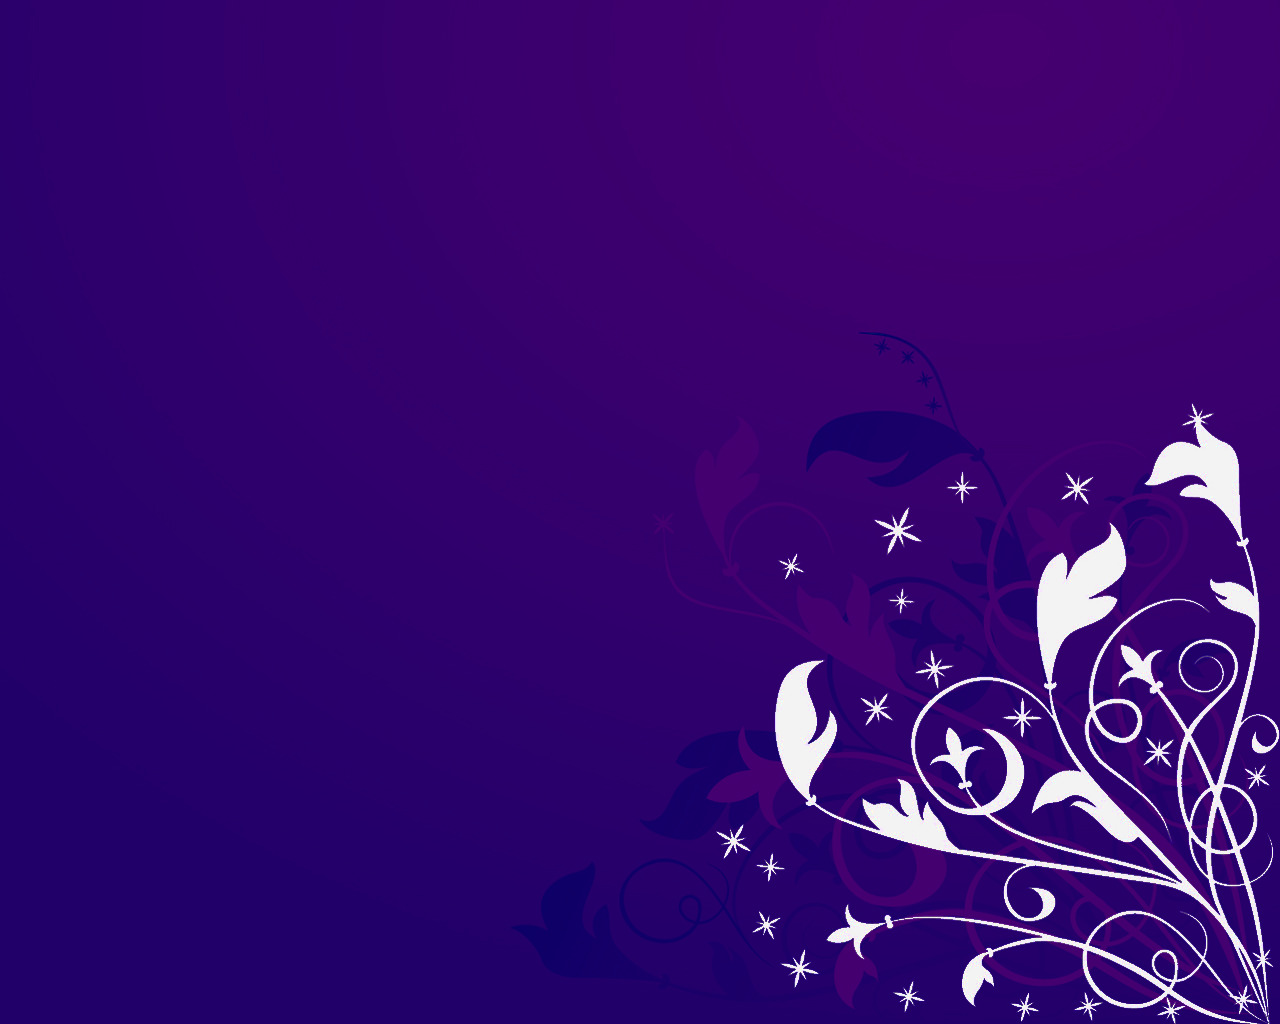 purple floral abstract HD Wallpaper